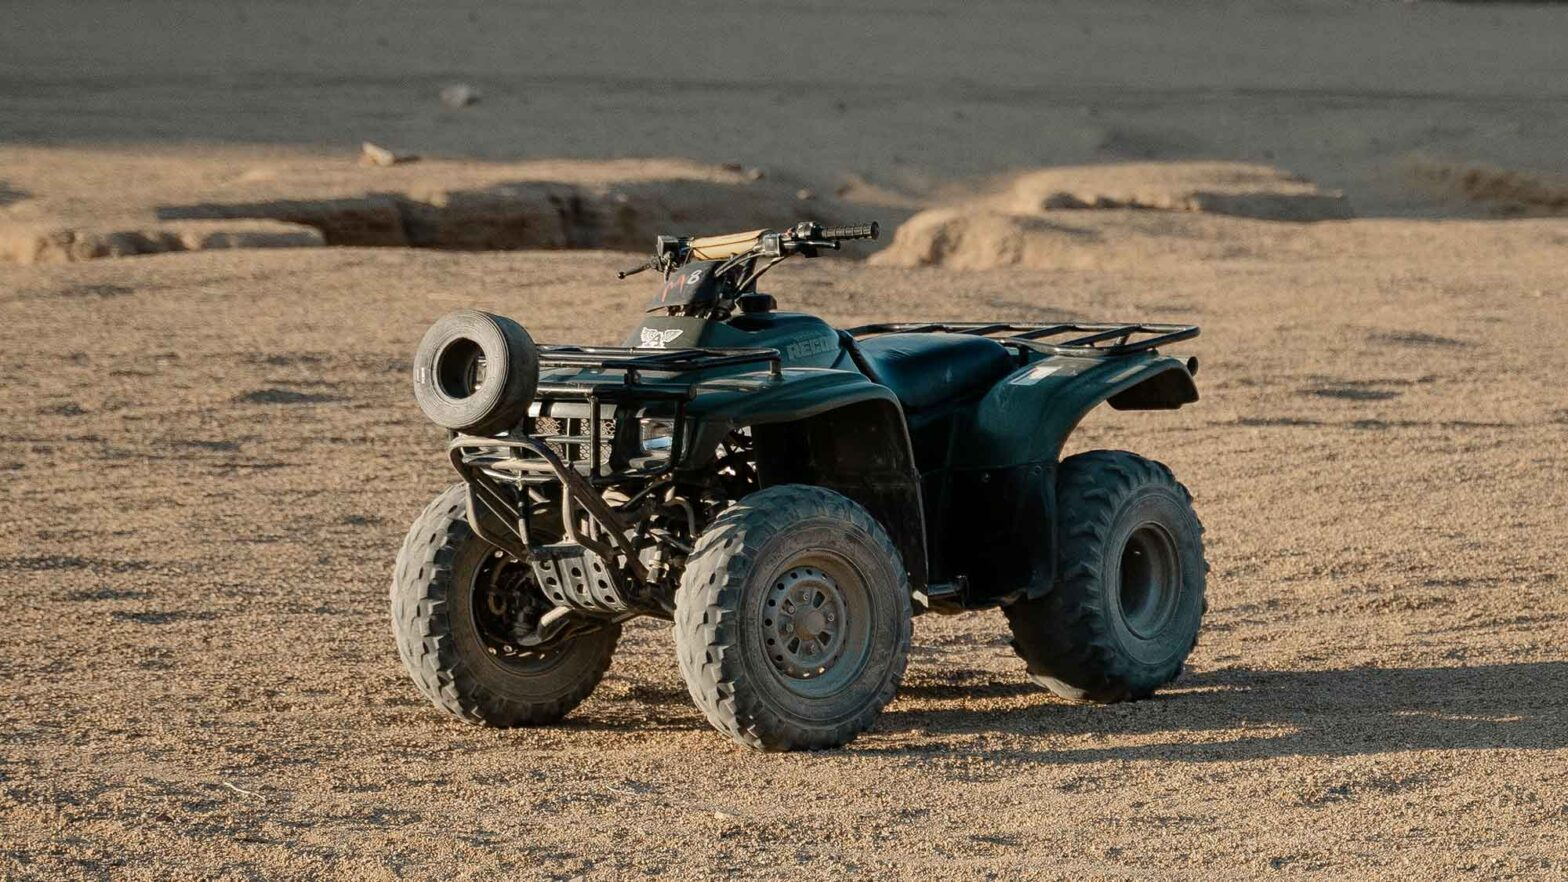 Quad Bikes' Rules For Different Uses in UK